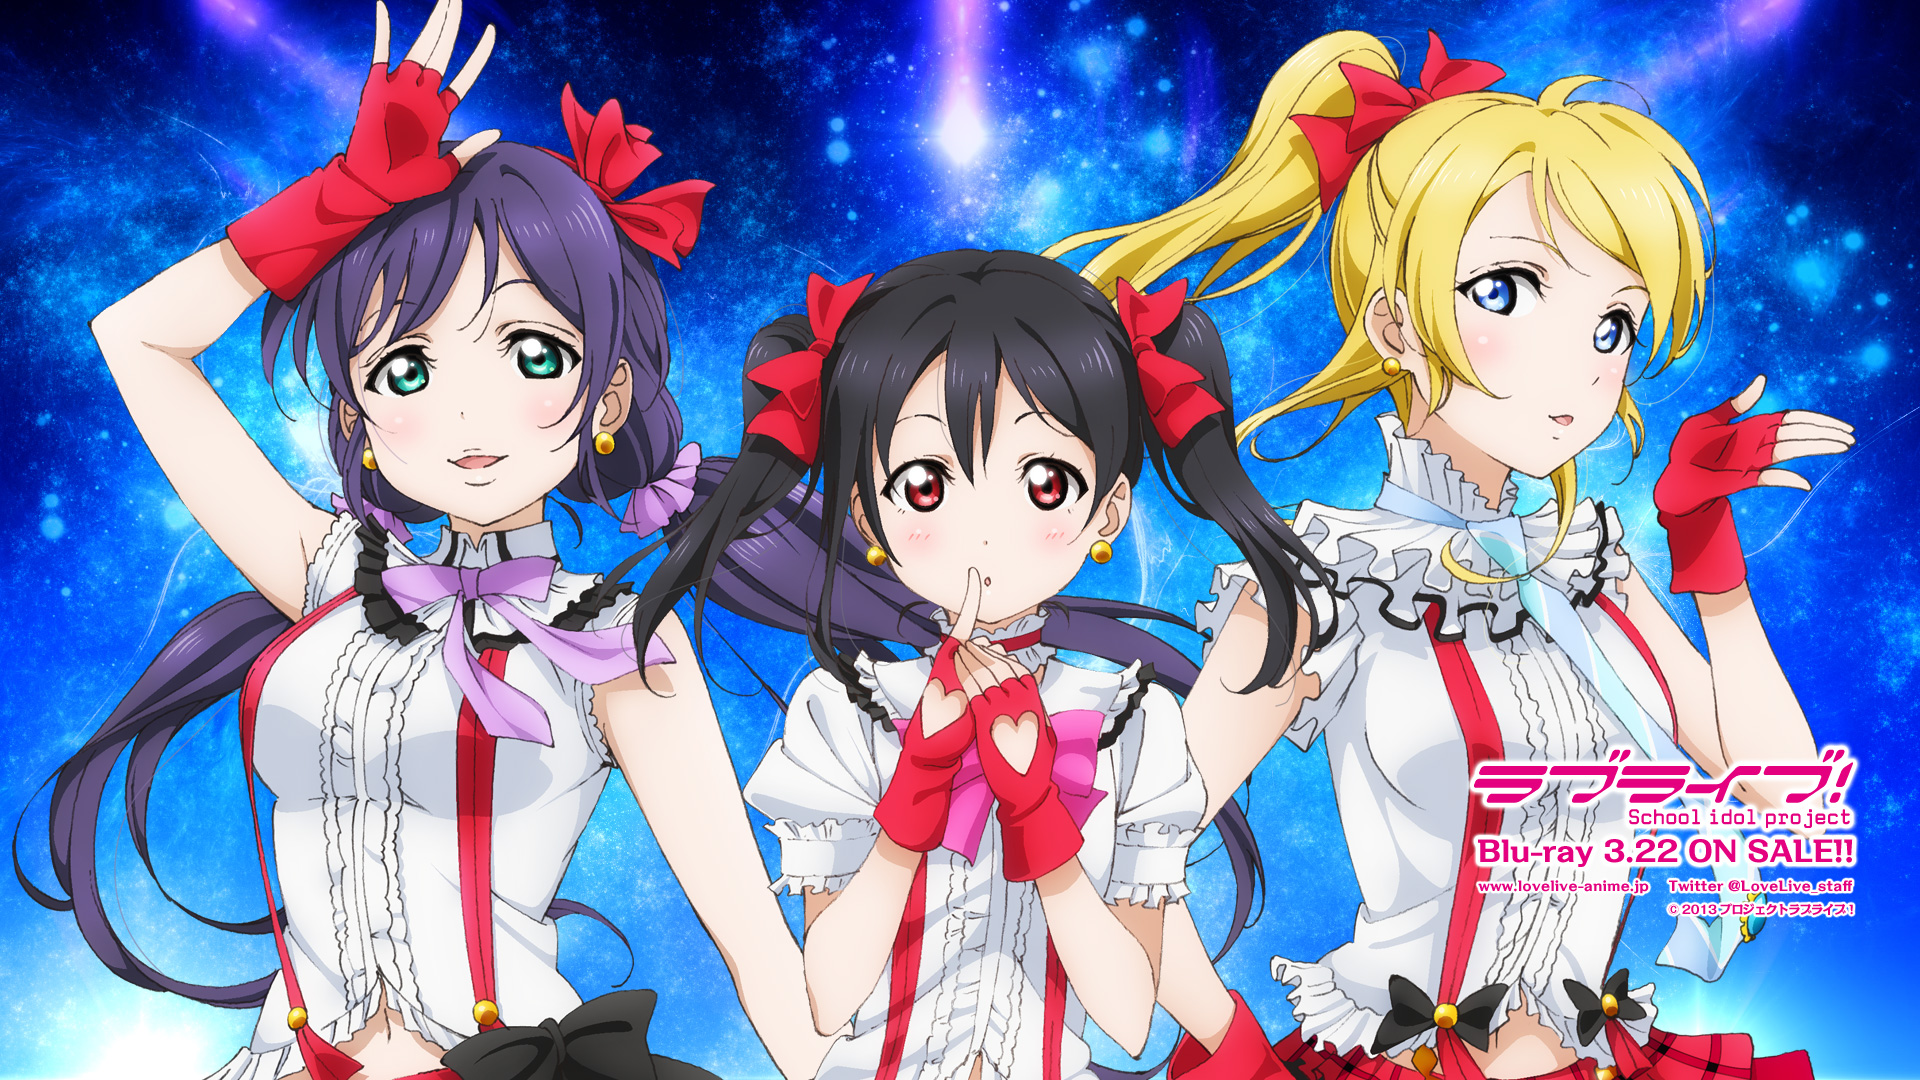 Love Live Wallpaper Desktop : Love Live!, Wallpaper - Zerochan Anime Image Board